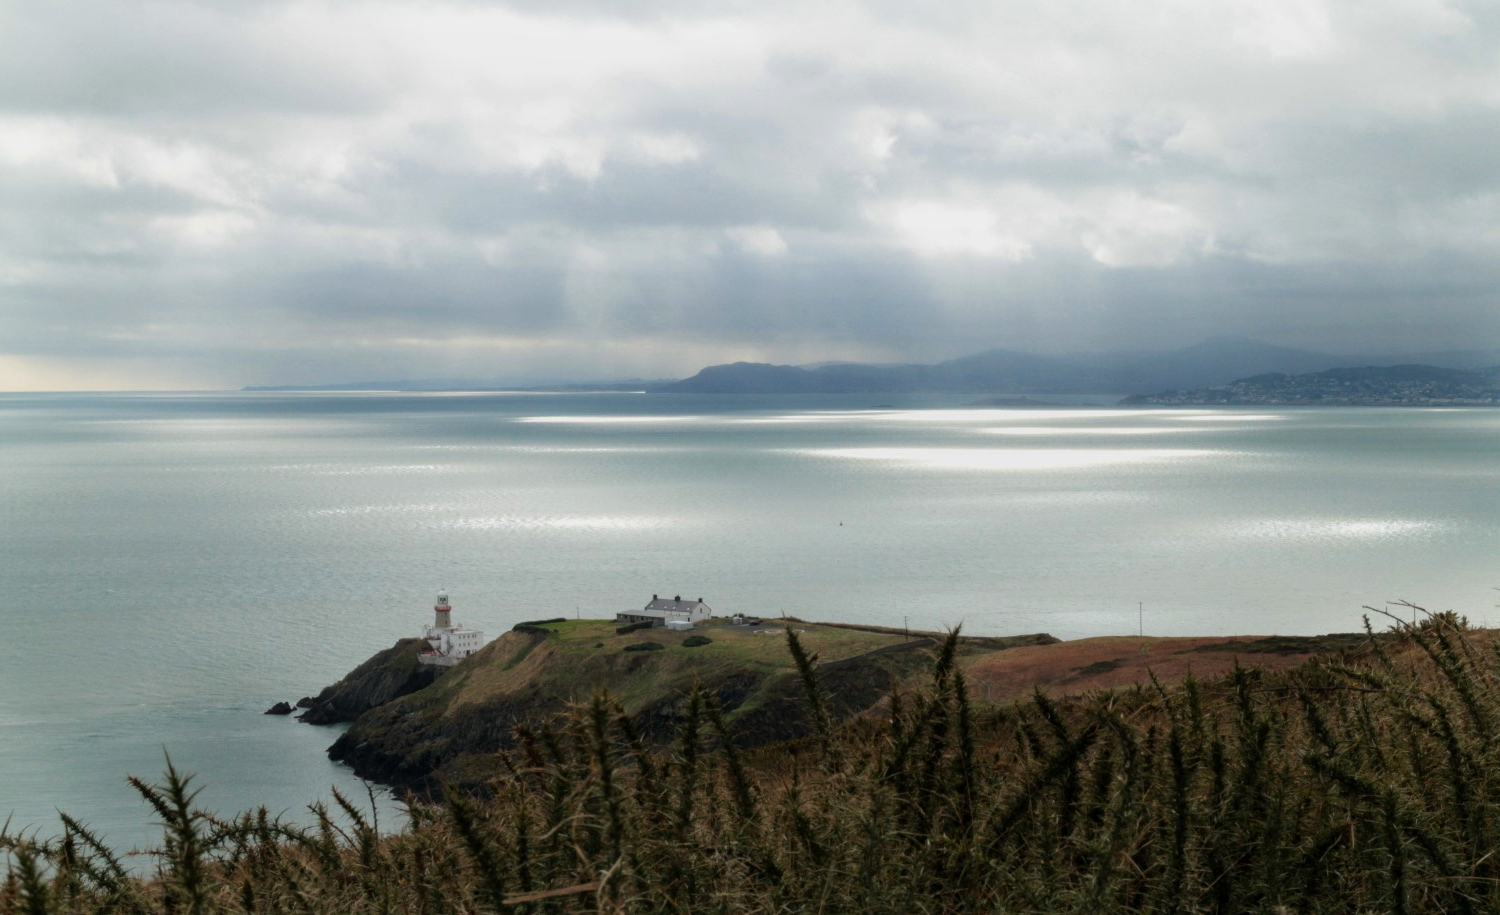 Sea views from Howth near Dublin, Ireland